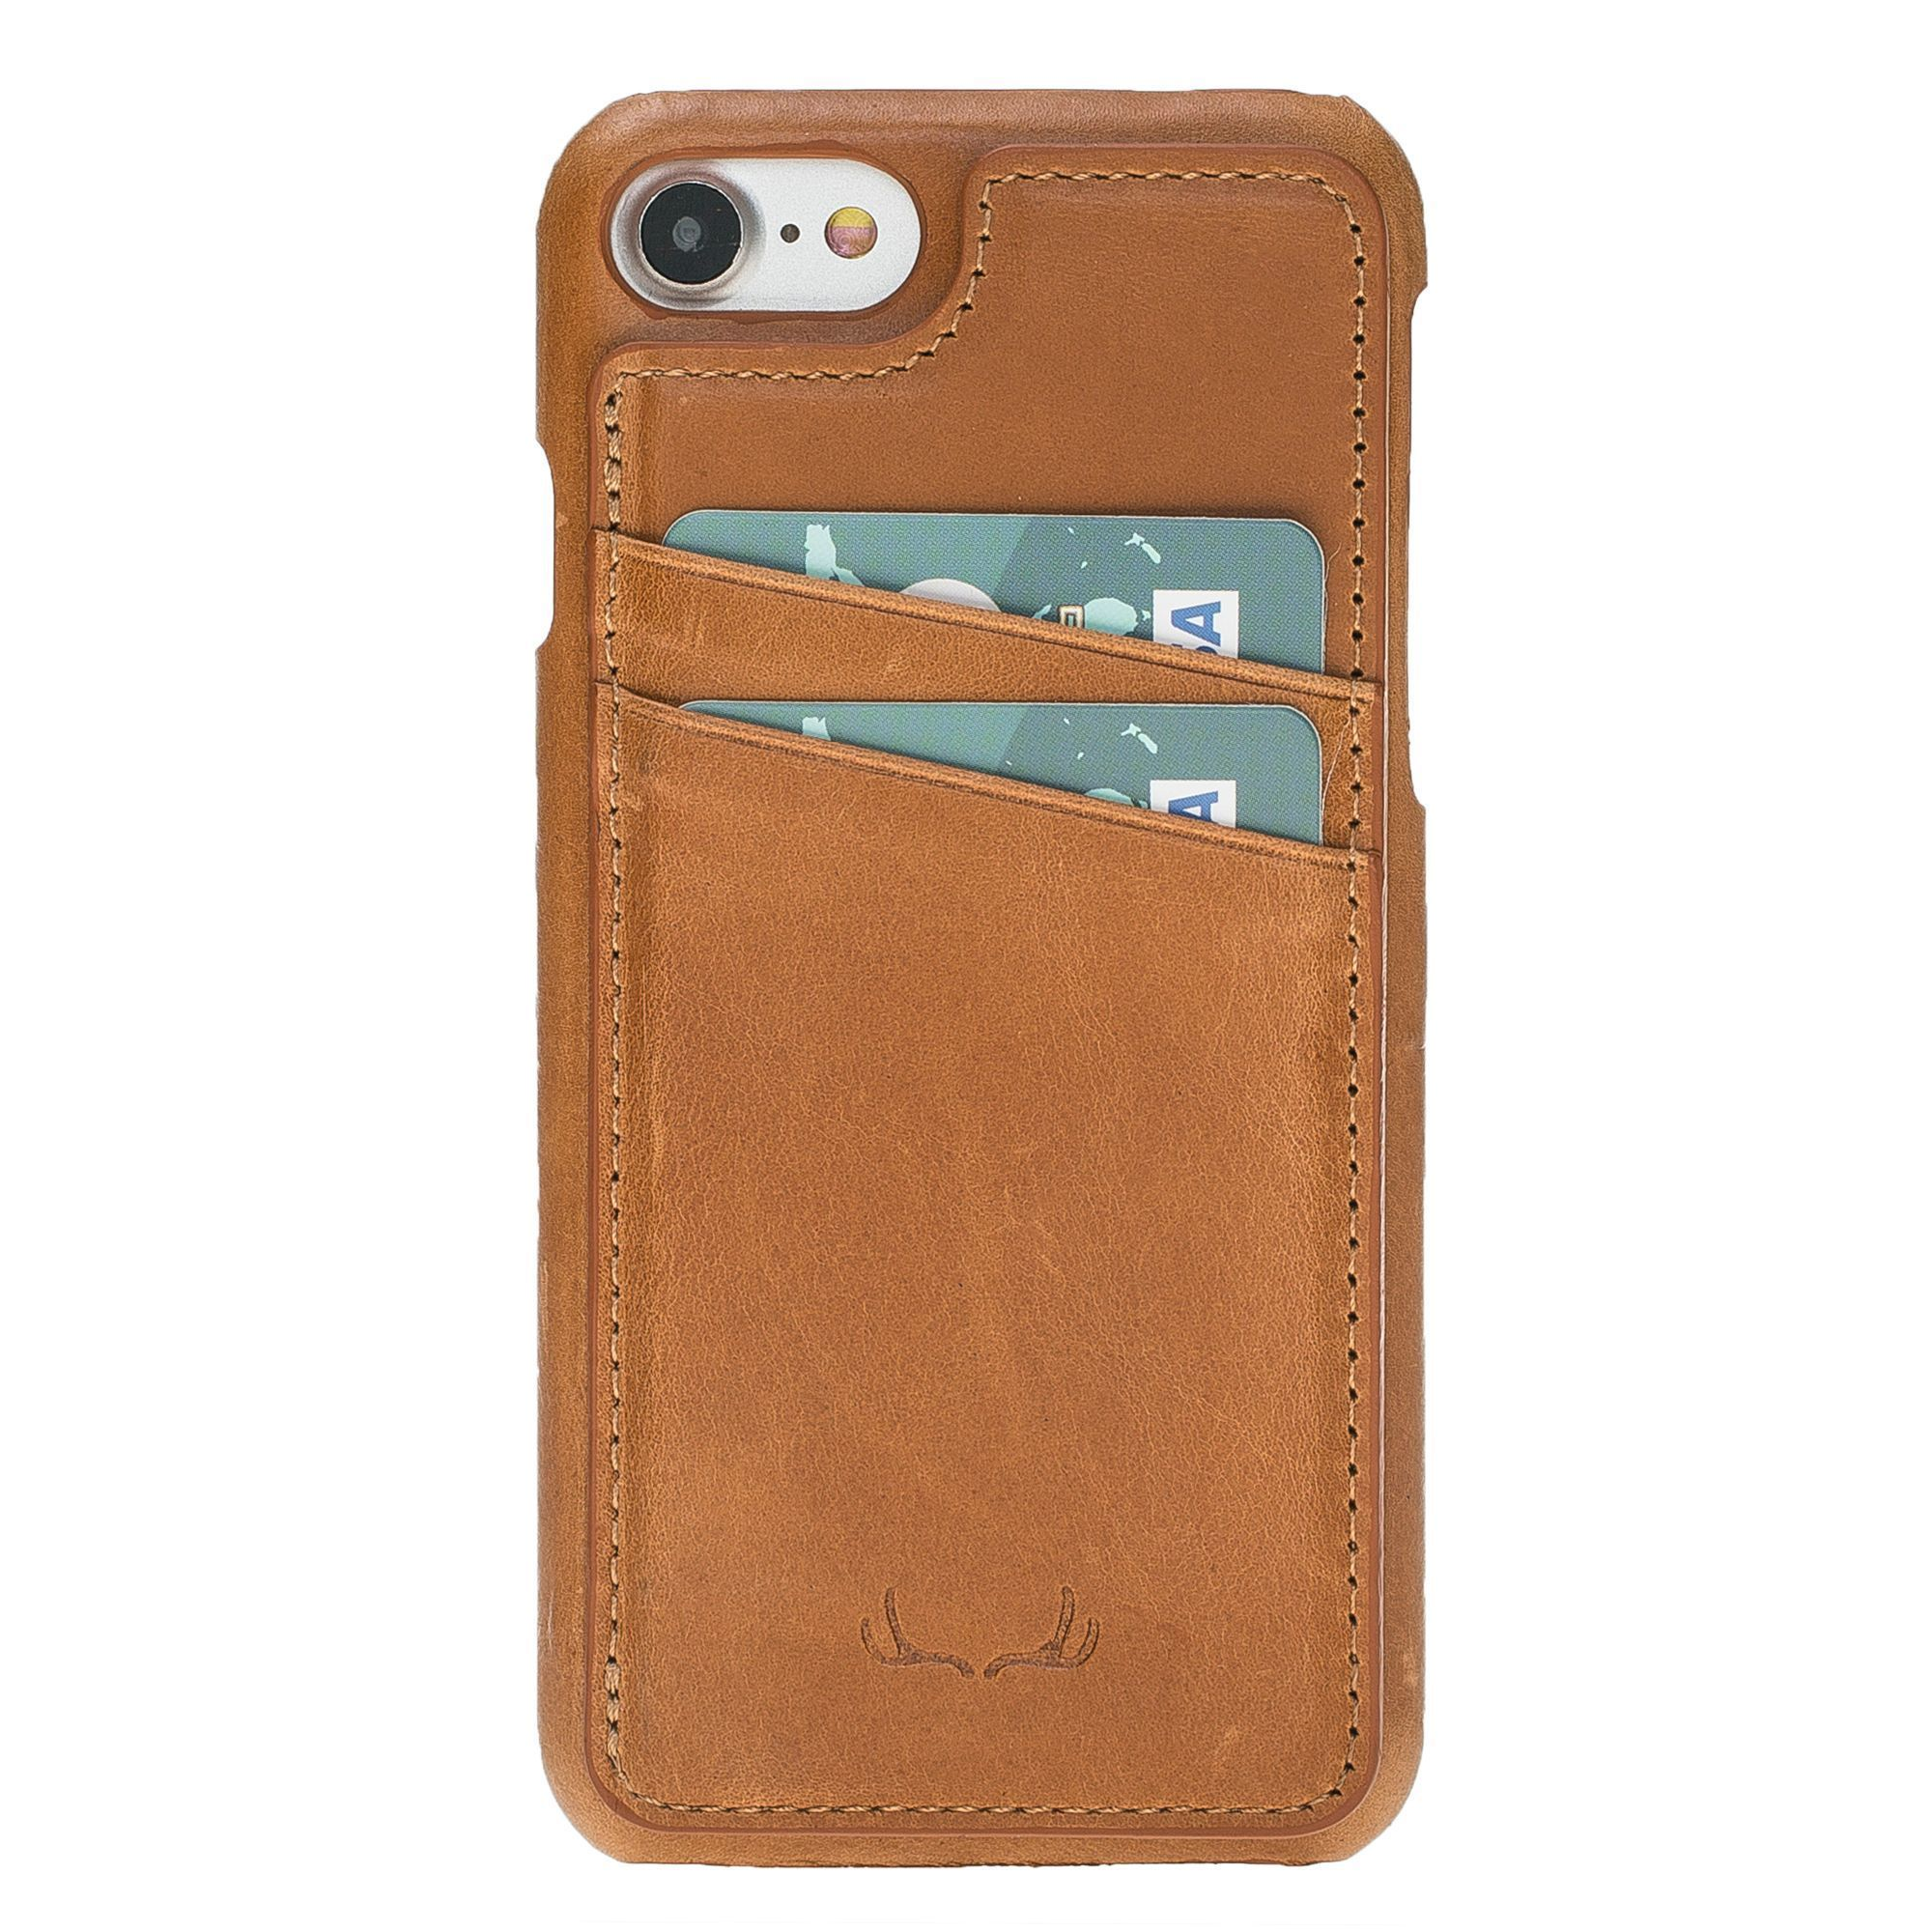 BNT Ultimate Stand Credit Card Leather Cases - Crazy - iPhone 7/8 - Tan